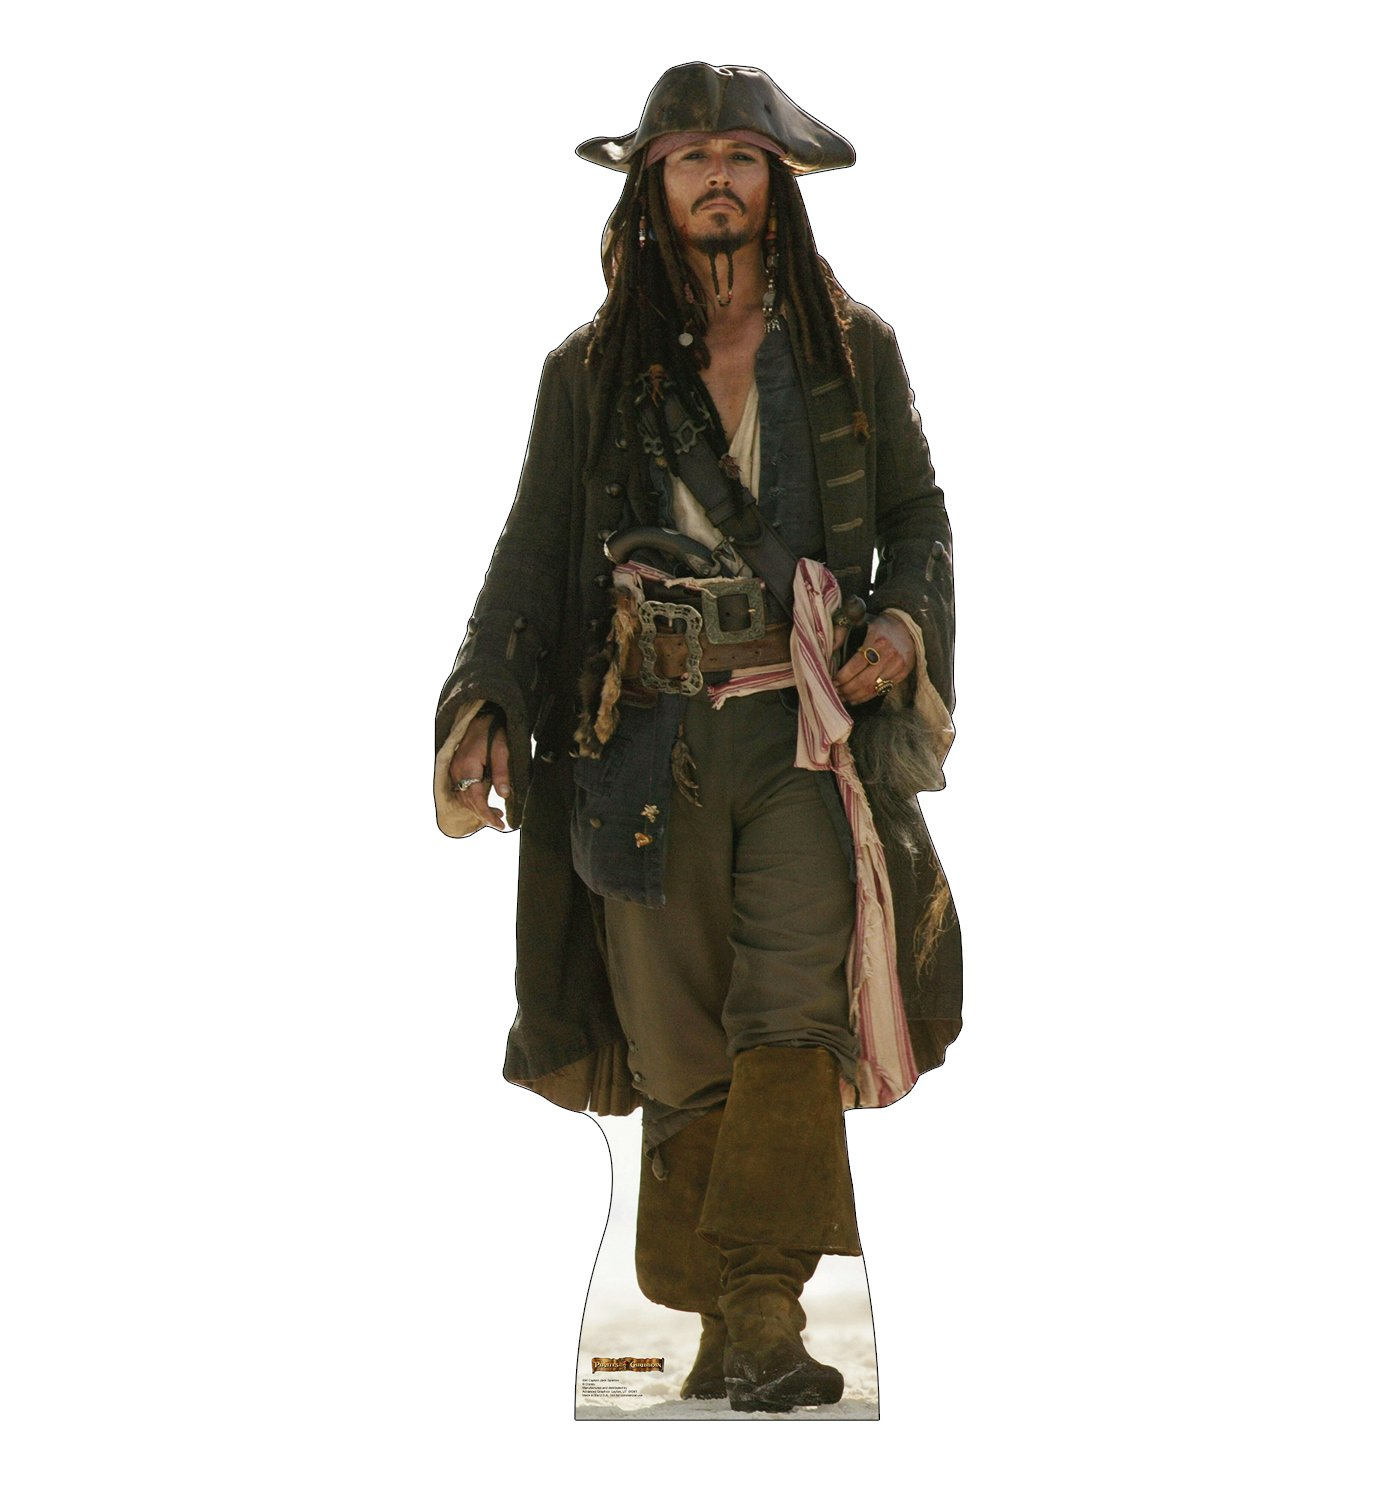 Advanced Graphics Captain Jack Sparrow Life Size Cardboard Cutout Standup - Disney's Pirates of the Caribbean